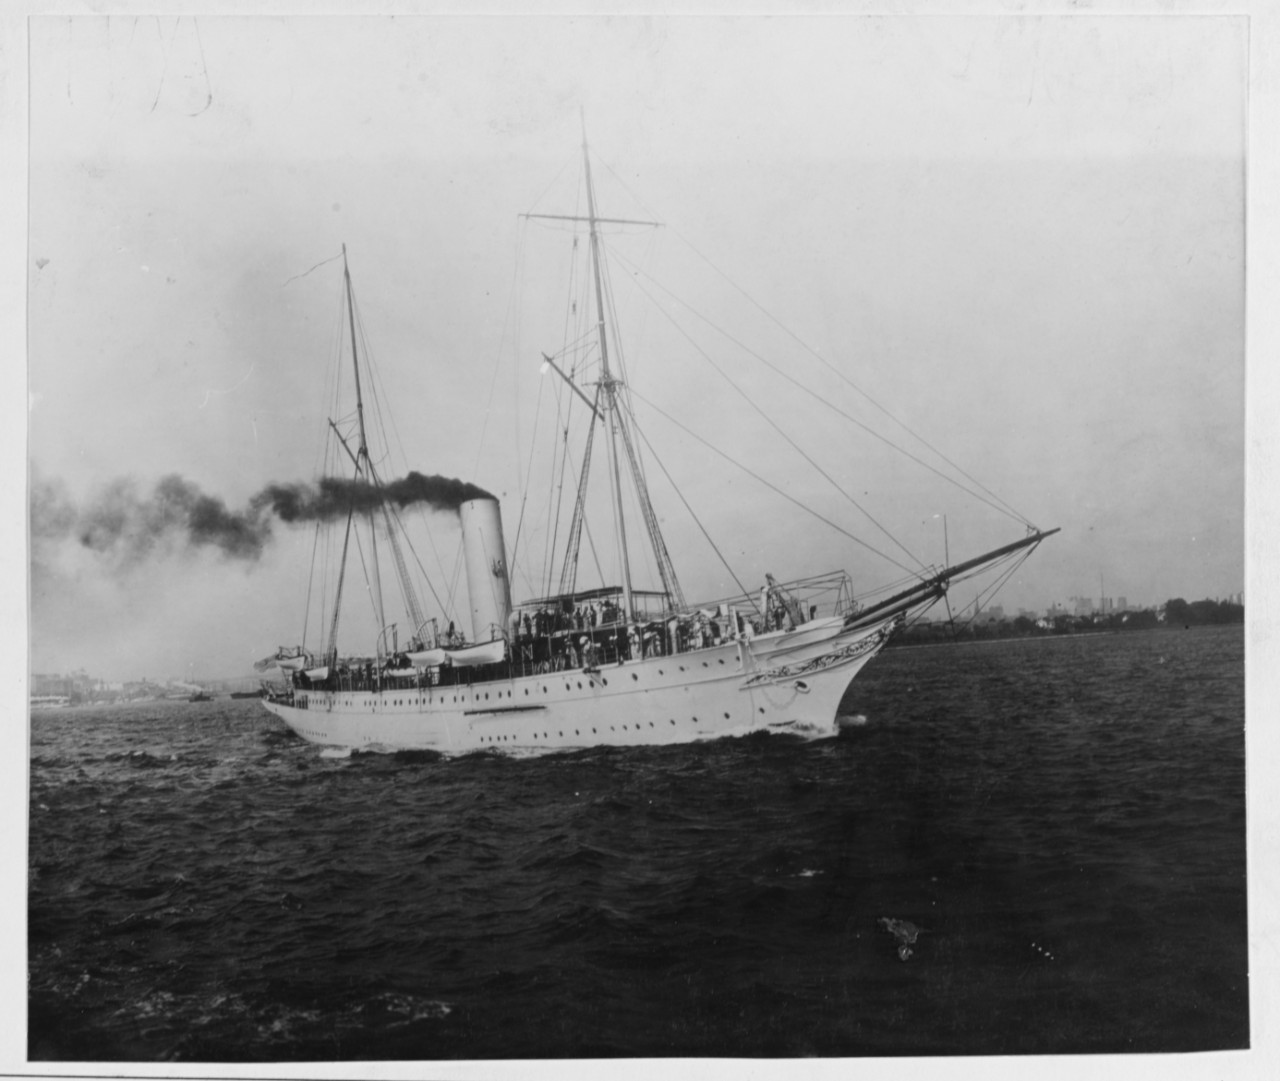 USS MAYFLOWER (PY-1), 1898-1931